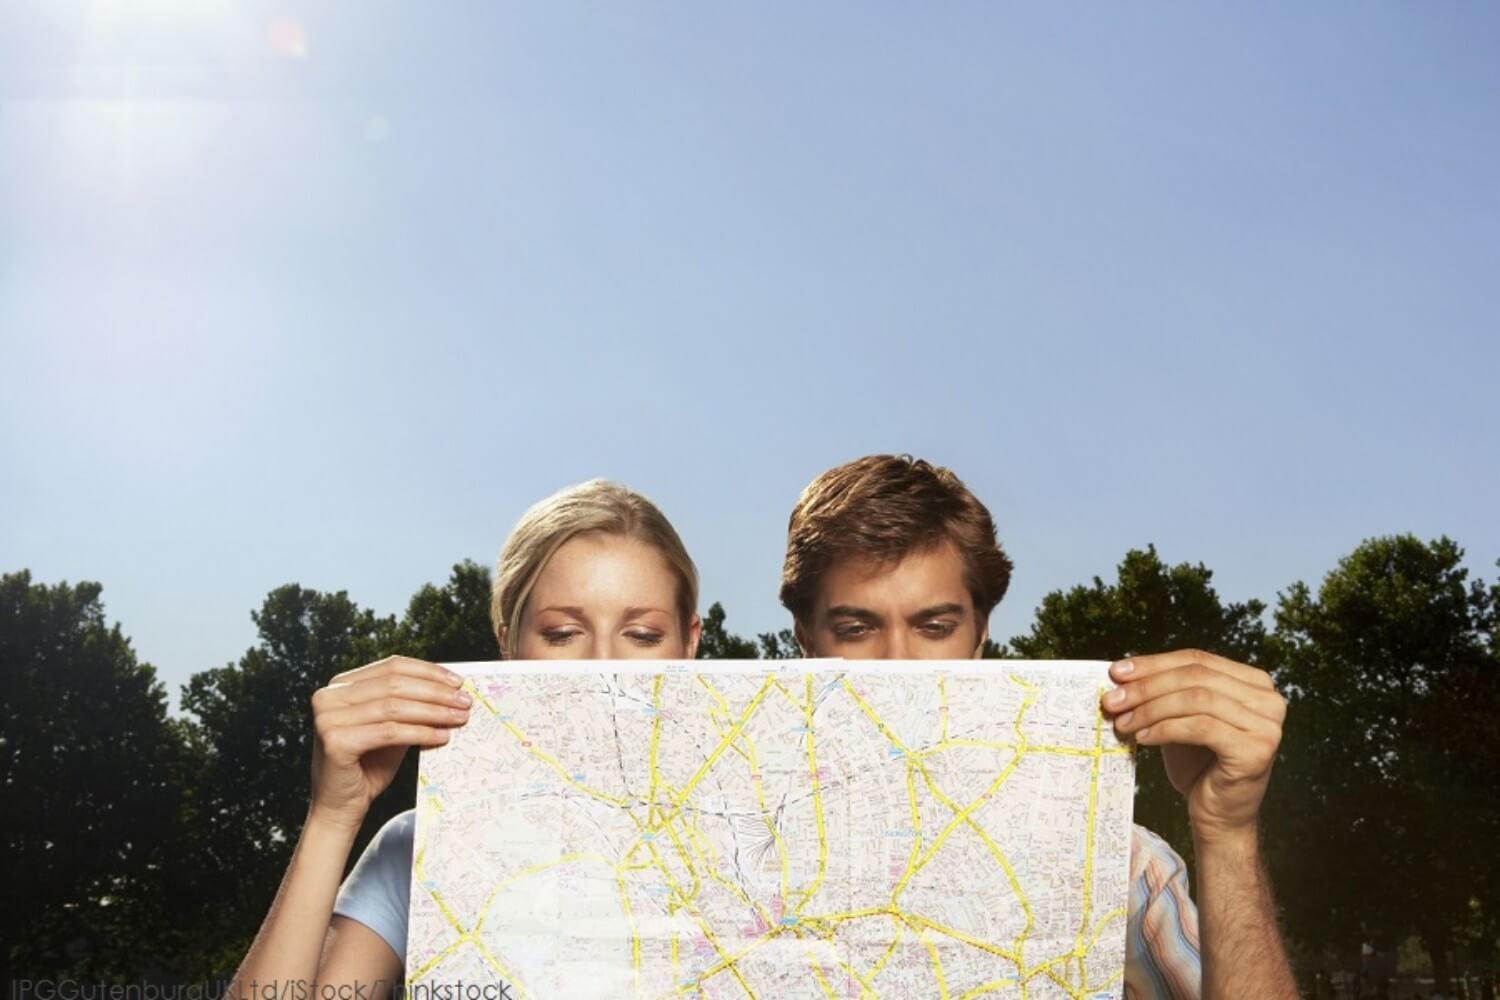 A scavenger hunt in Big Bear Lake is a good way to explore the city.